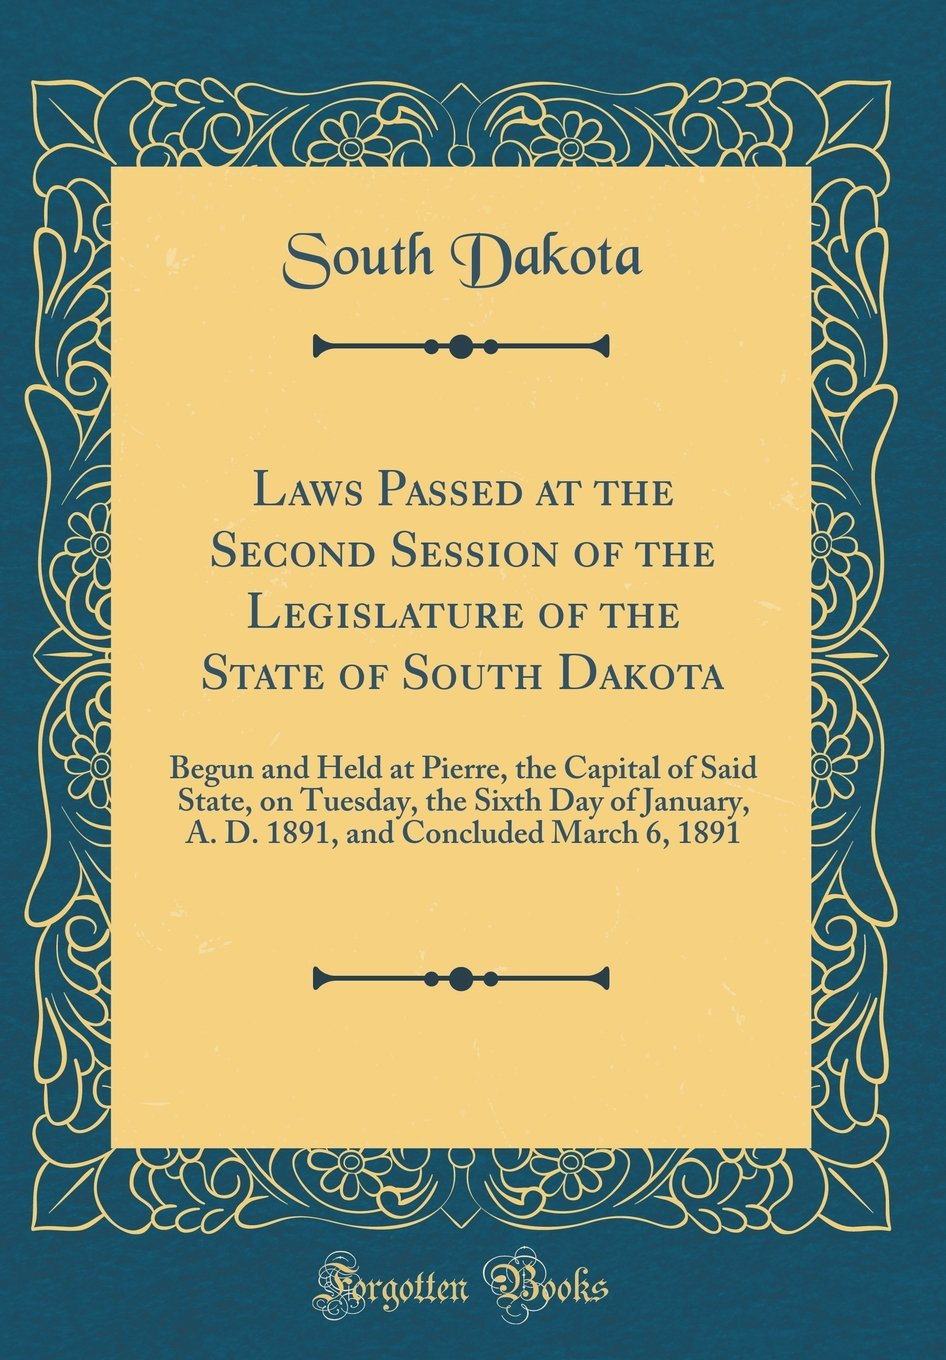 Laws Passed at the Second Session of the Legislature of the State of South Dakota: Begun and Held at Pierre, the Capital of Said State, on Tuesday, ... and Concluded March 6, 1891 (Classic Reprint) pdf epub